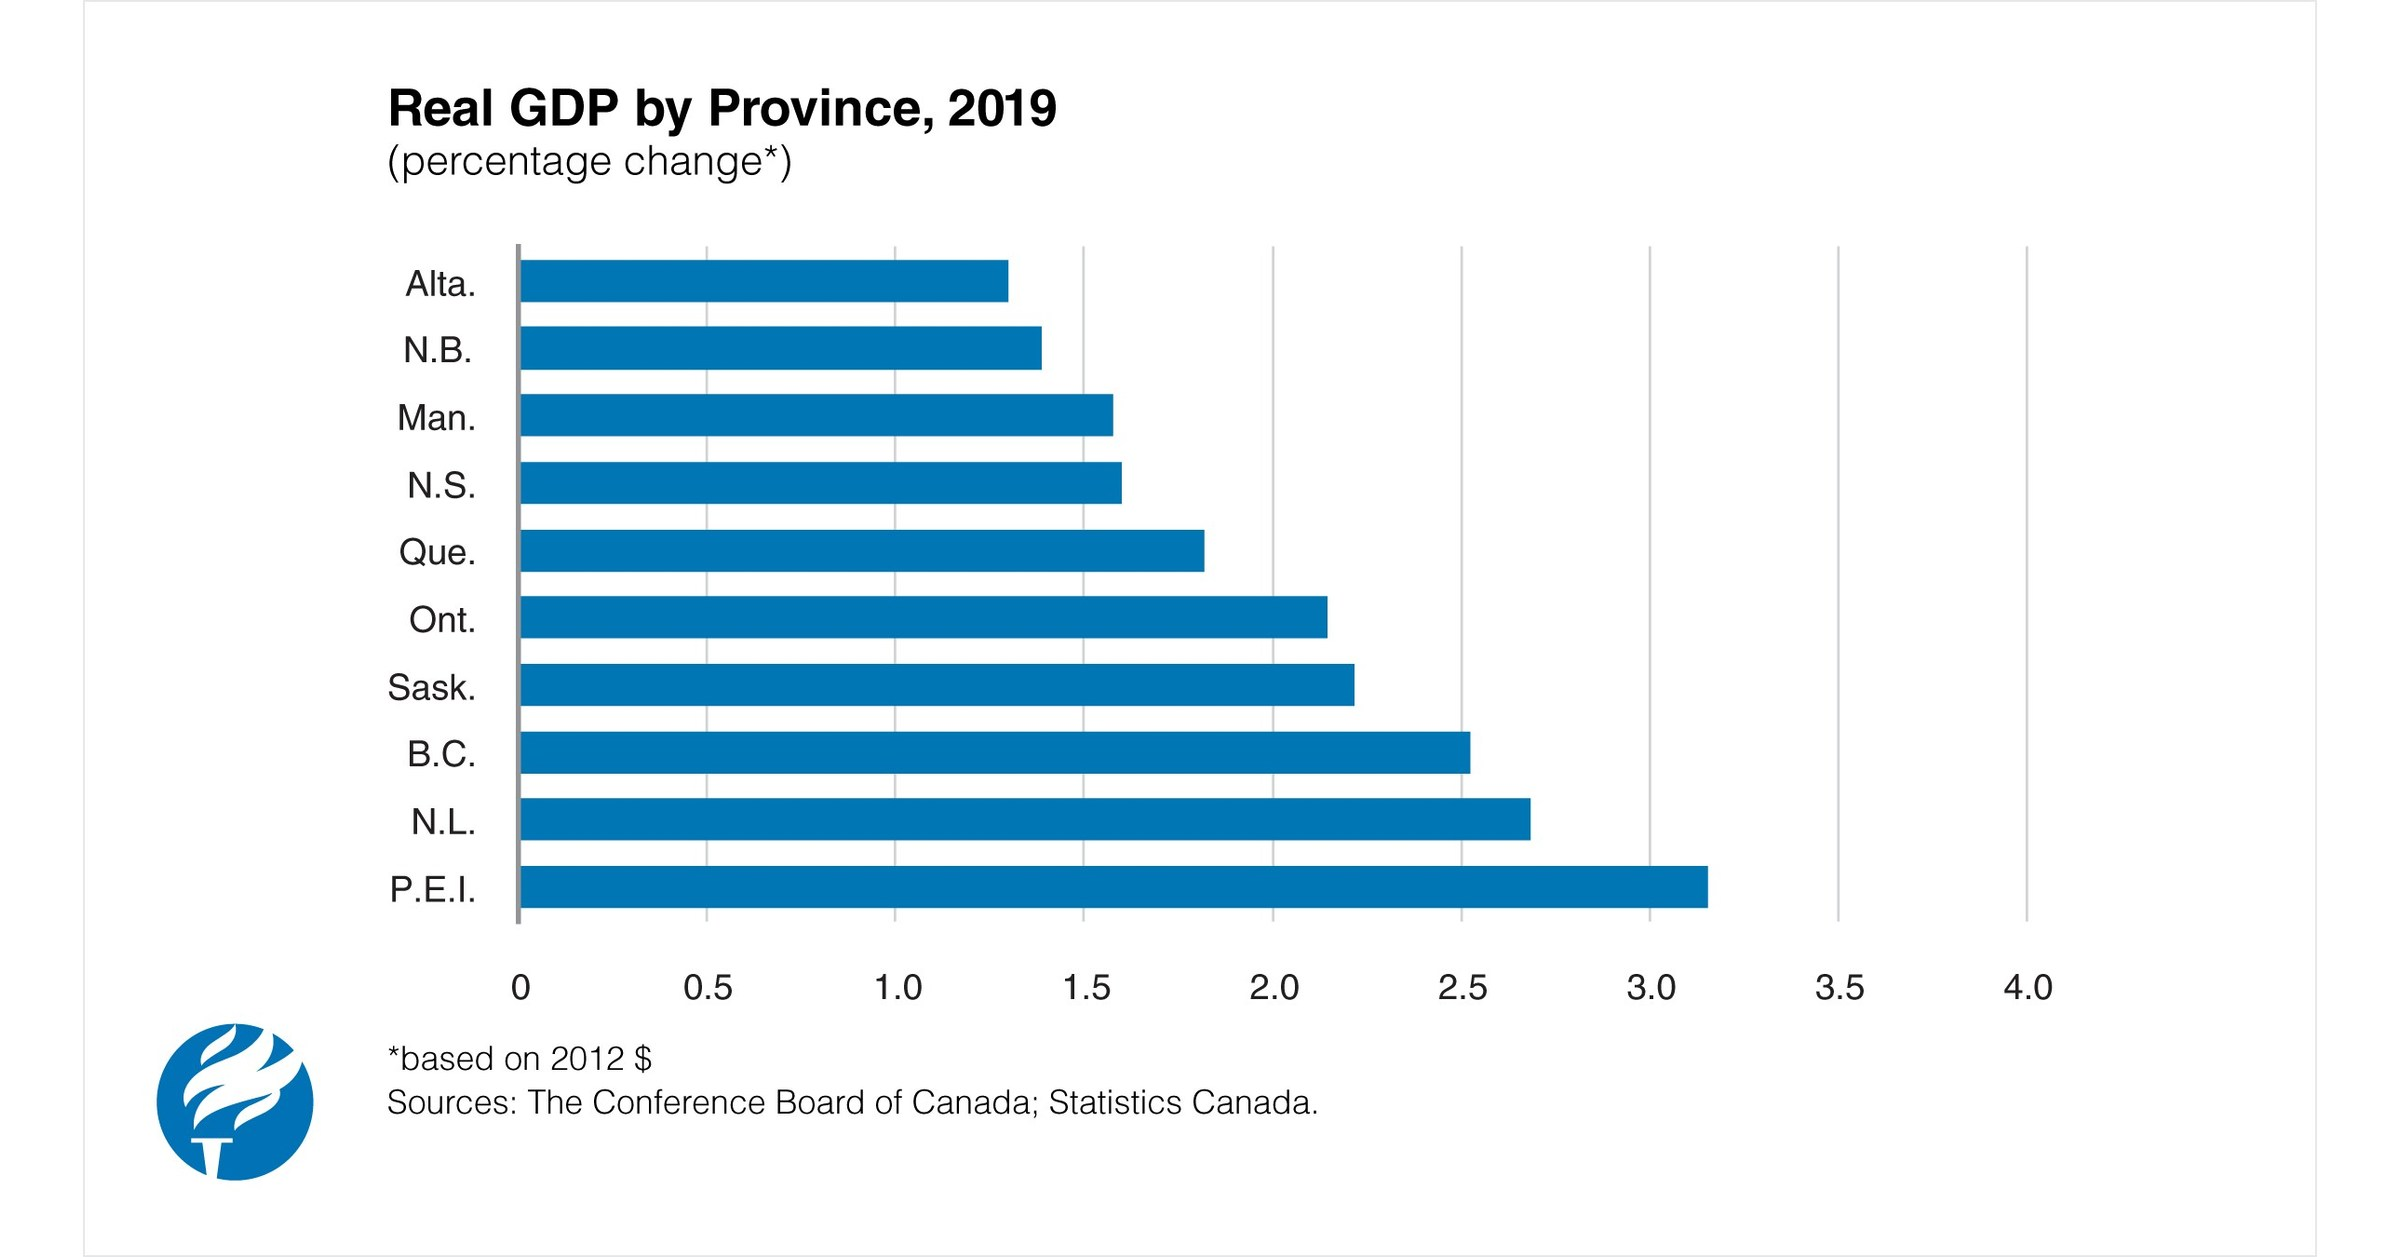 Uneven Economic Outlook for Canadian Provinces in 2019